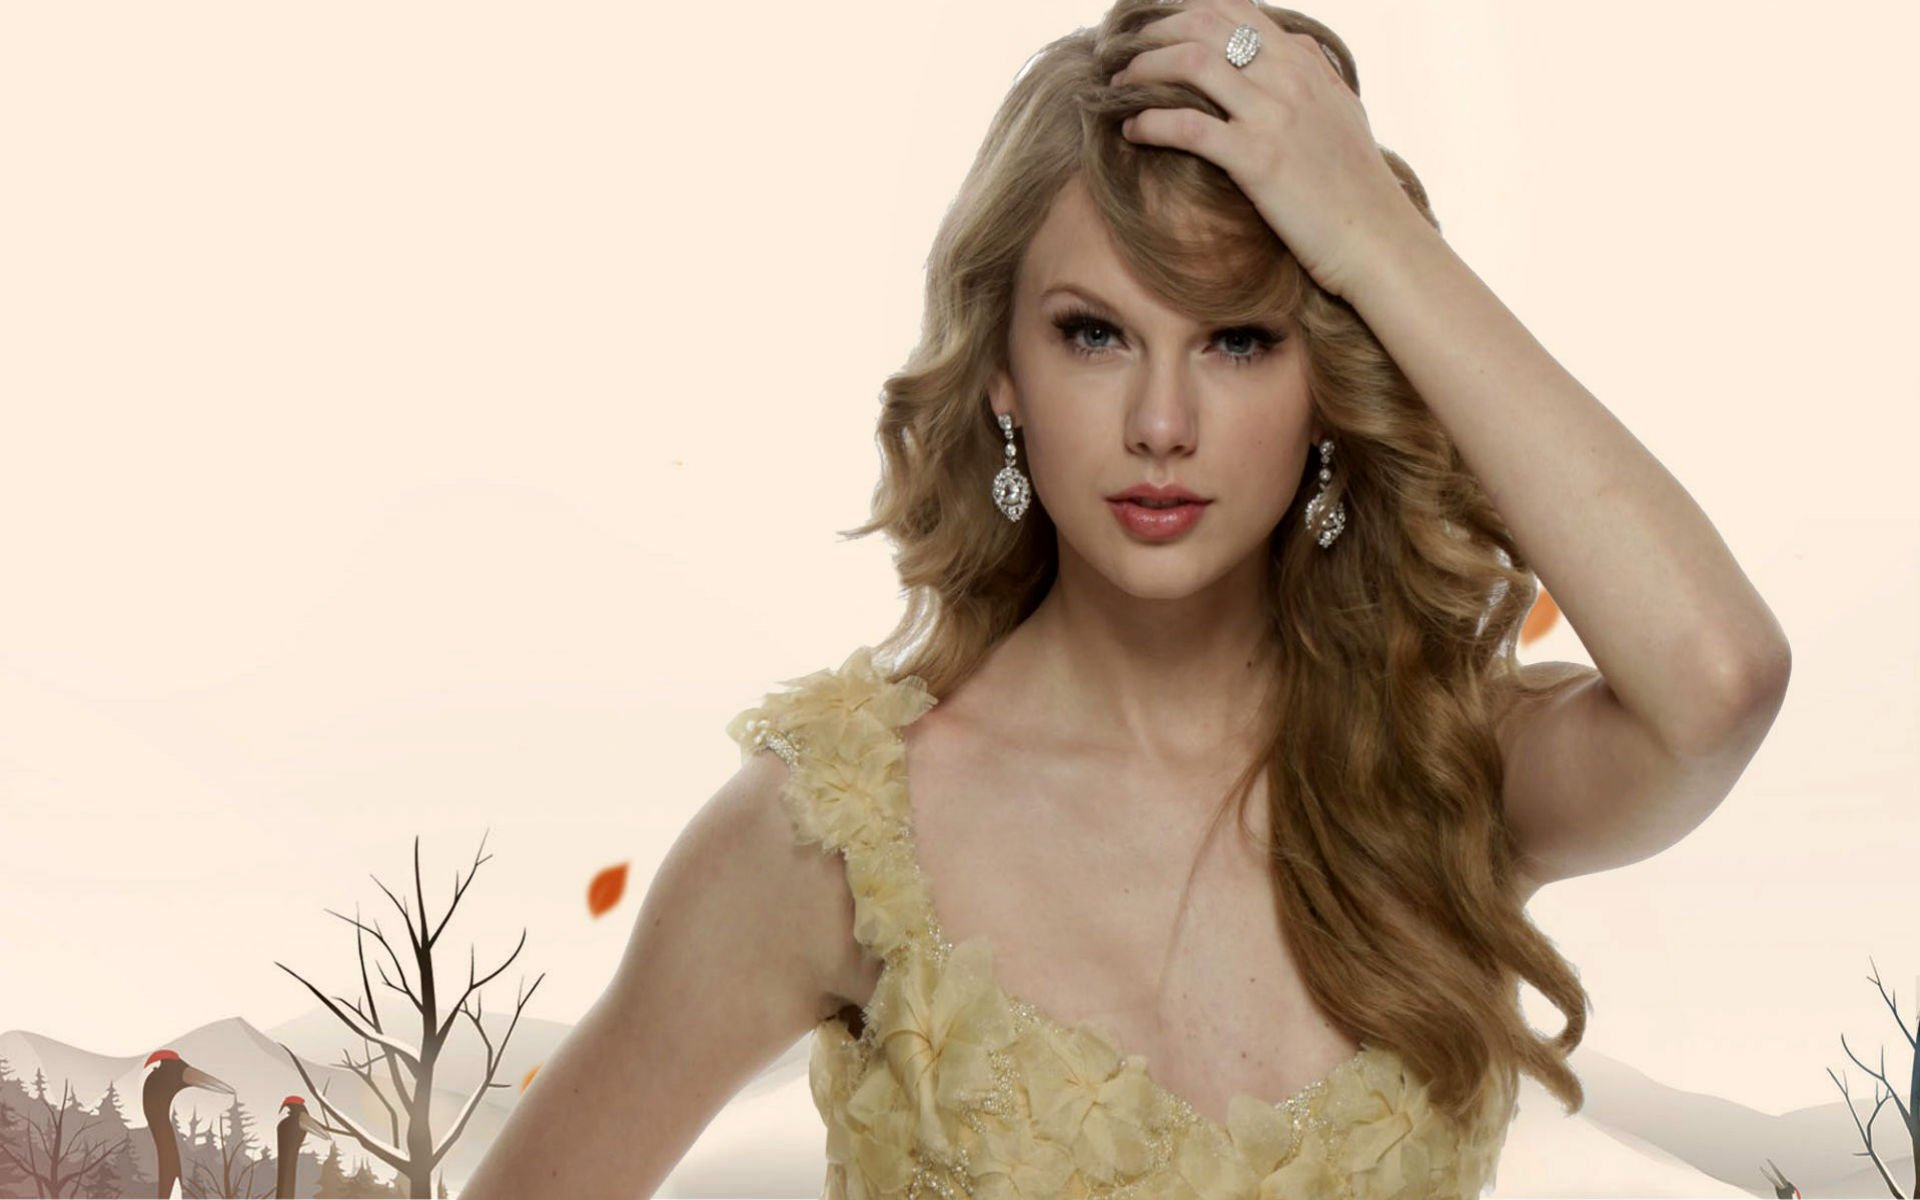 Girl Wallpapers Pics Taylor Swift Countrywestern Pop Country Sexy Babe Synthpop